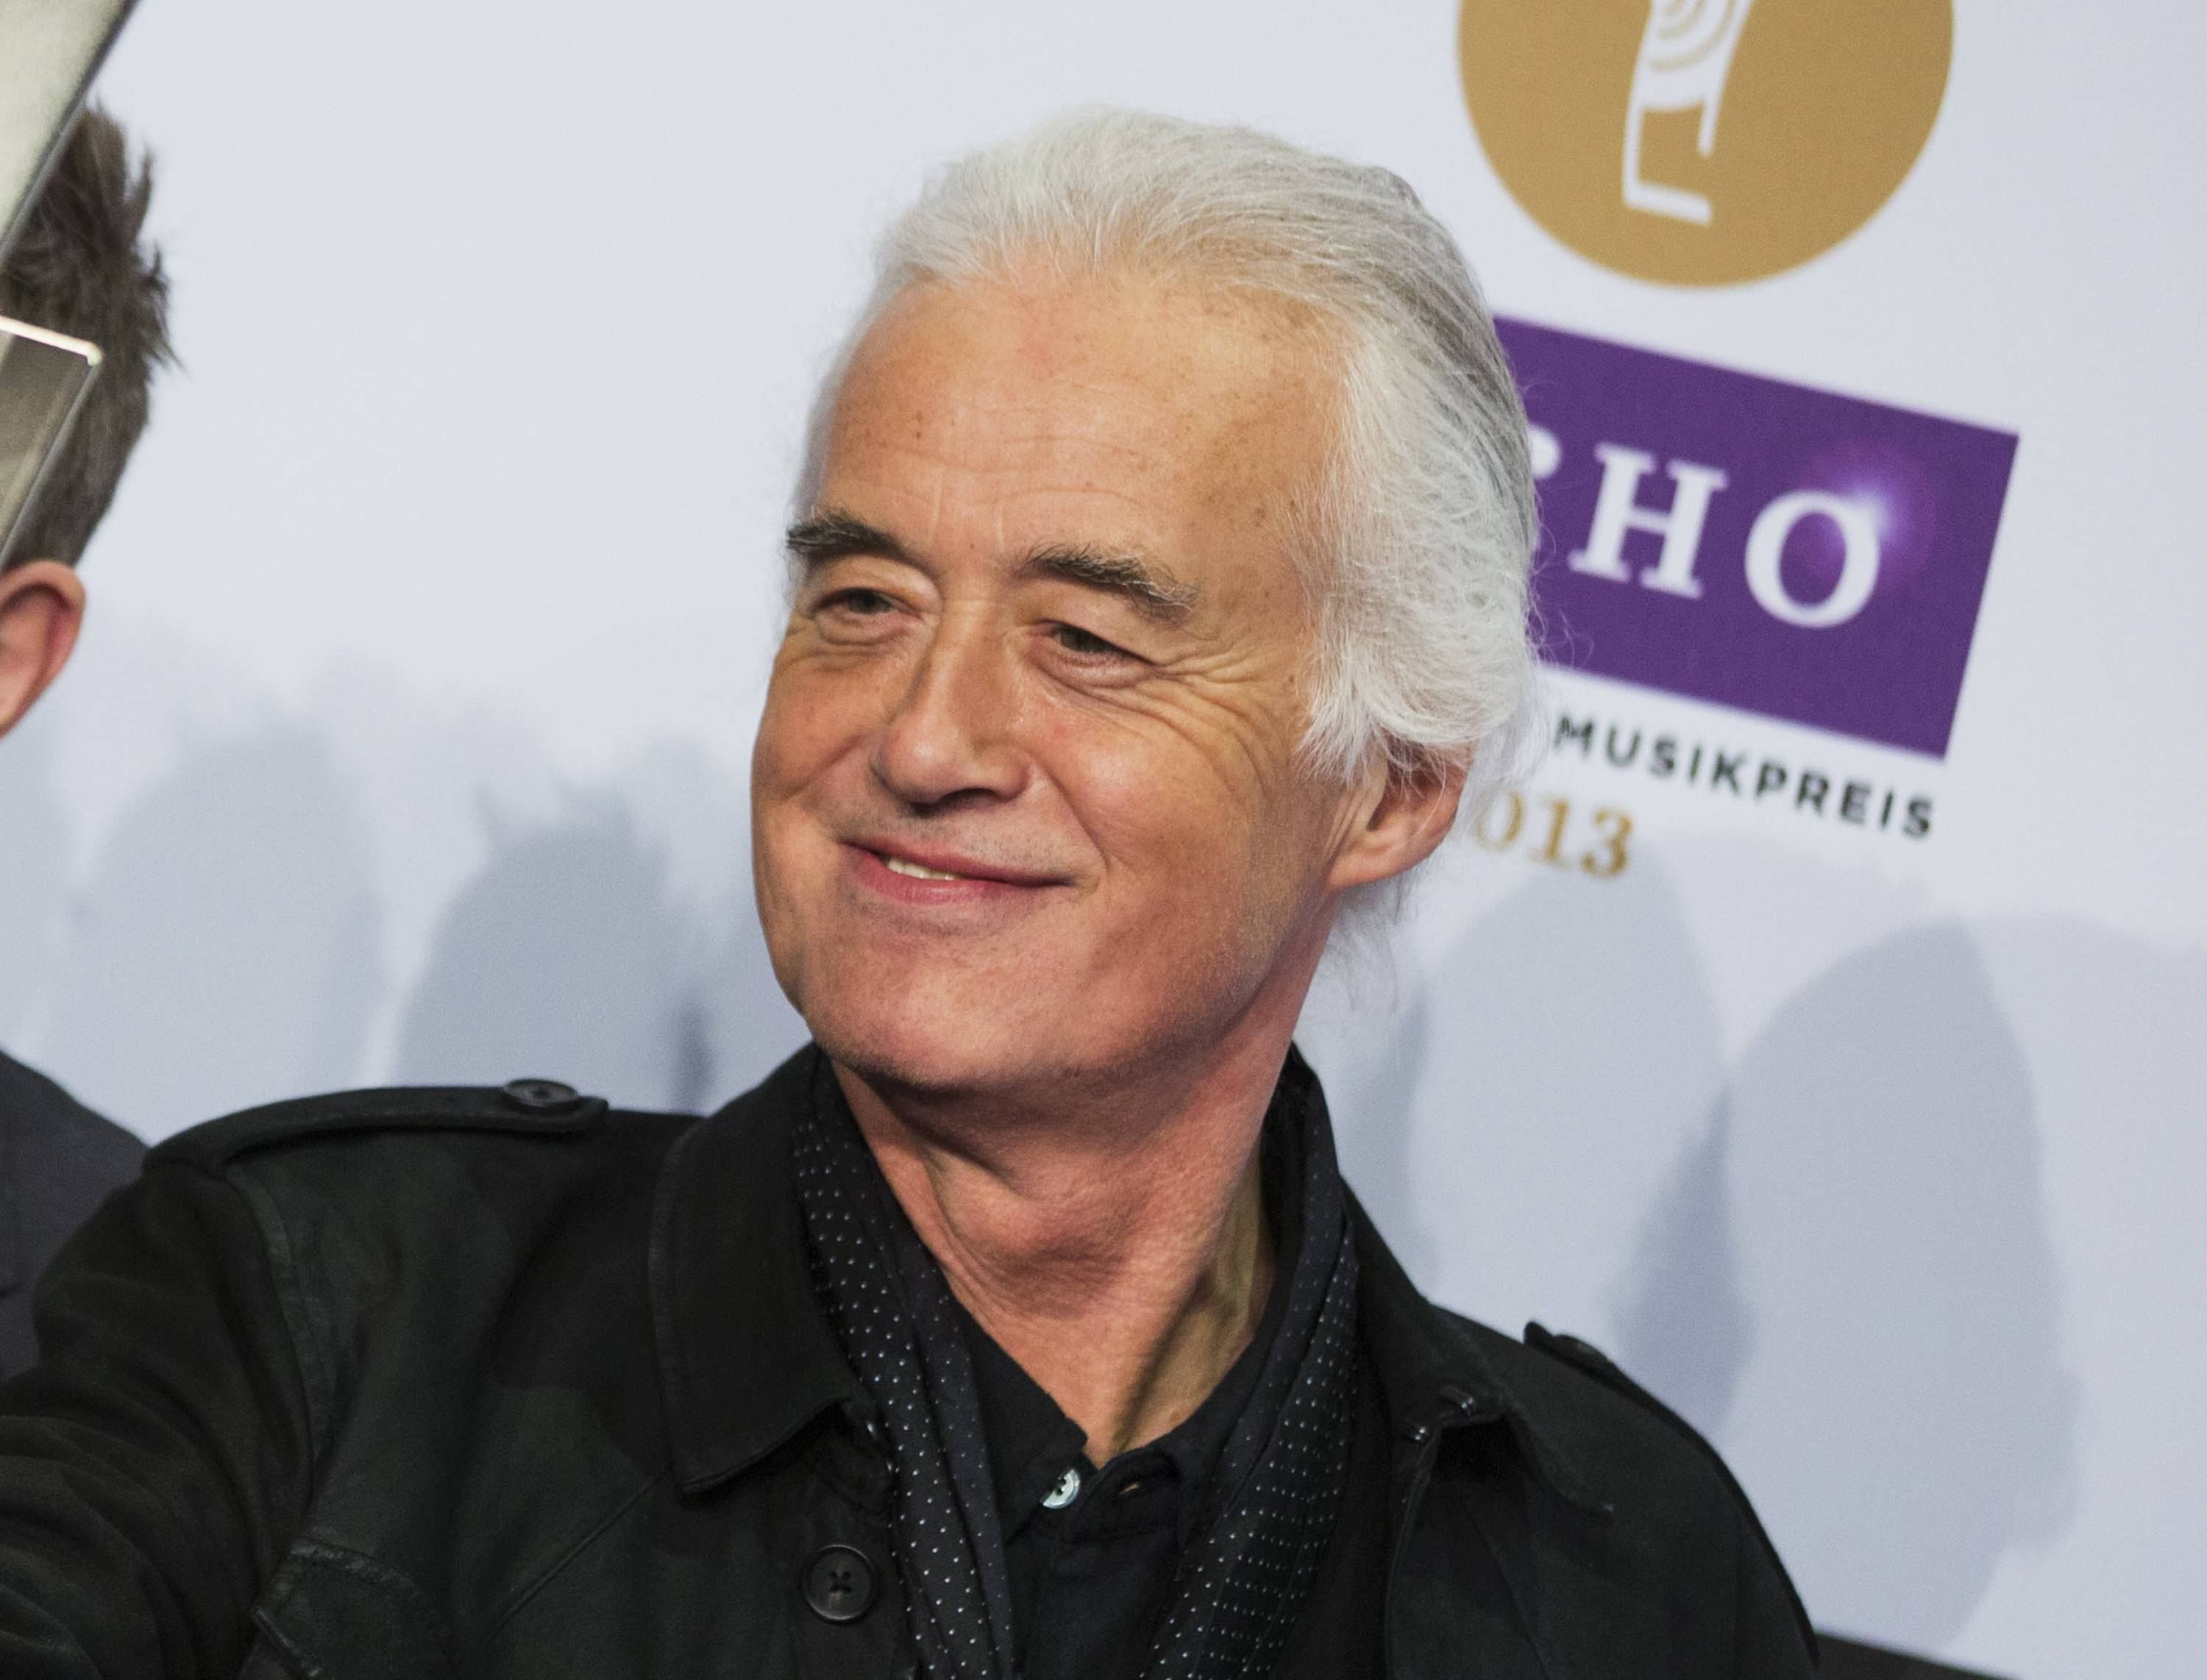 Jimmy Page has remastered Led Zeppelin's entire catalog. The first set arrived Tuesday.